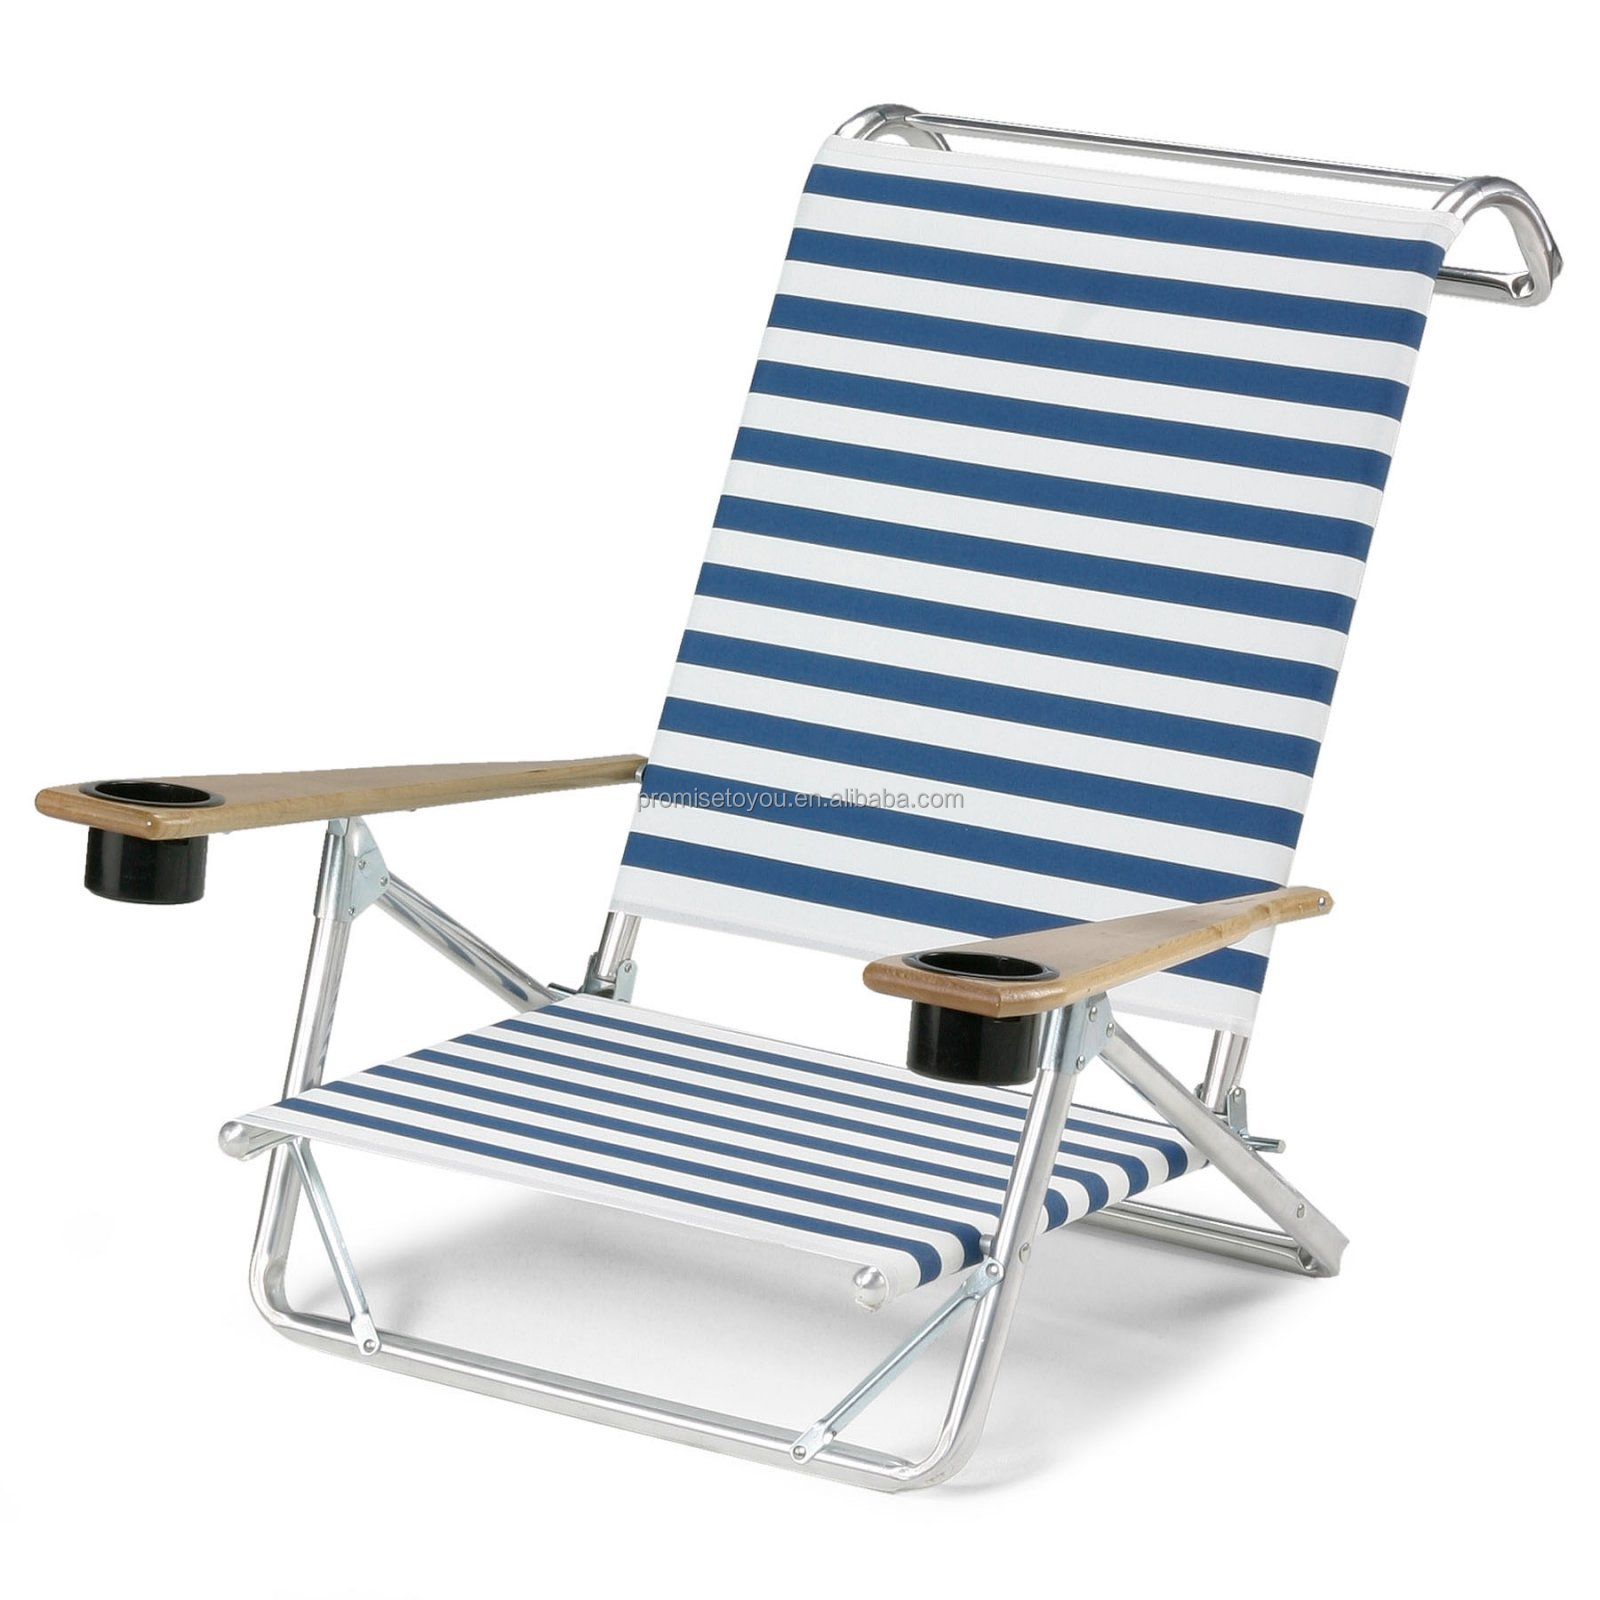 Beach chair 5 position chair with cup holder insulated for Chaise longue pliante plage